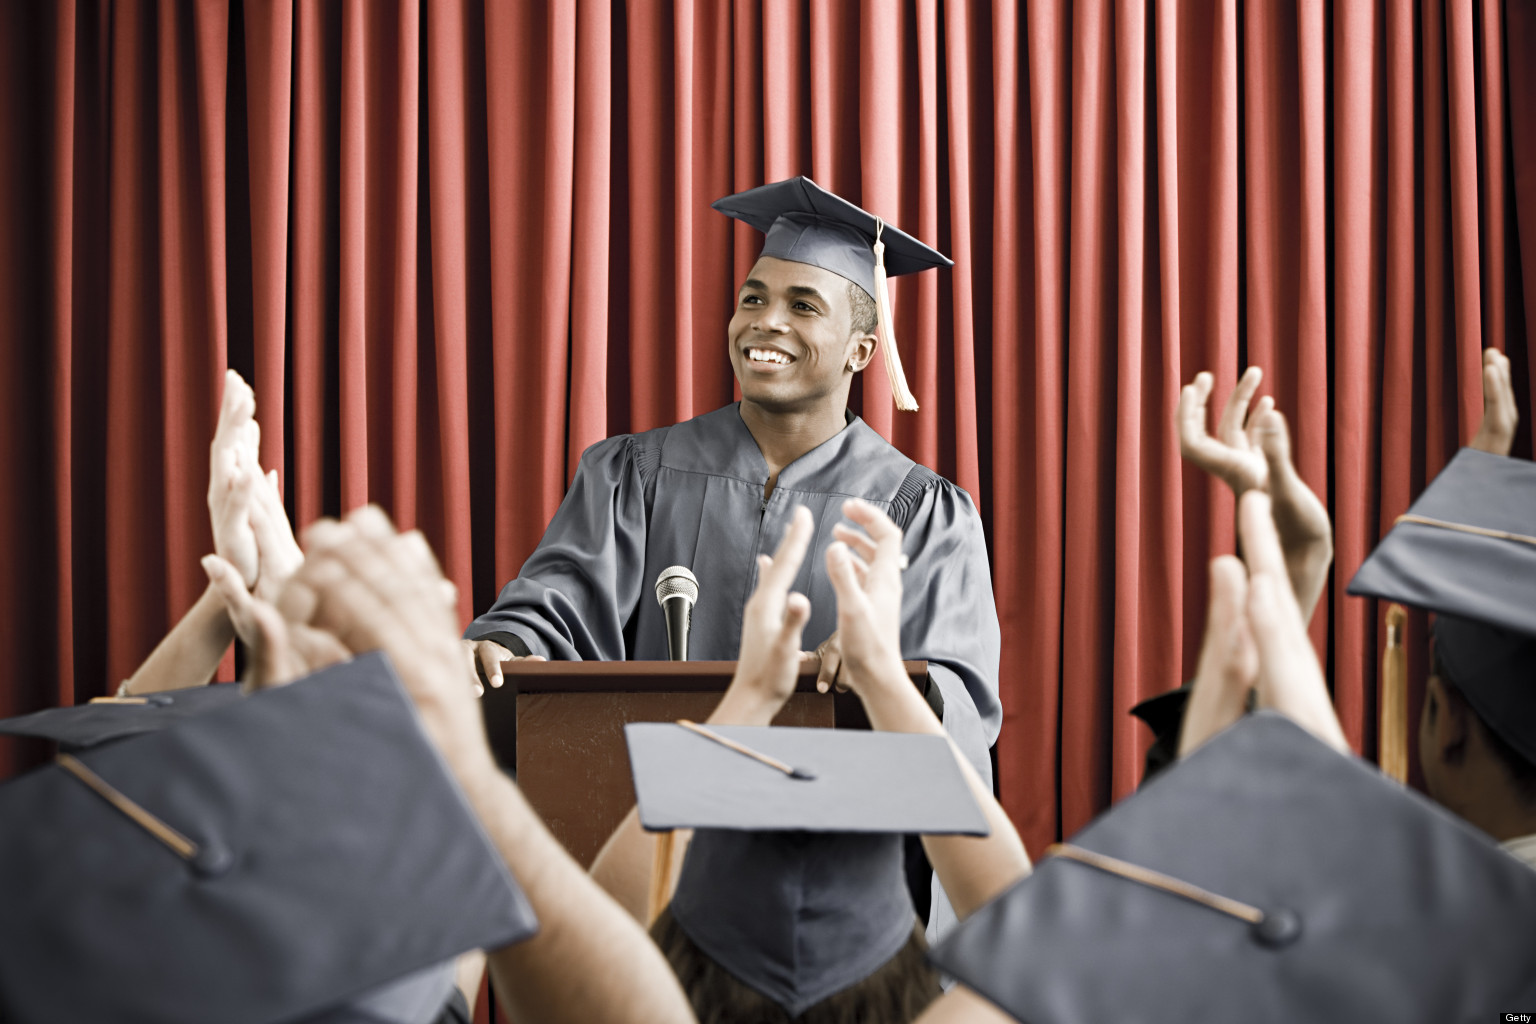 roxboro community school graduation speech rubric This high school senior delivered a breathtaking graduation speech in a sense, it started a year ago at the bethel african methodist episcopal church off of orchard street in new haven, when the hillhouse community accepted glen worthy as hillhouse's 5th principal in 4 years.